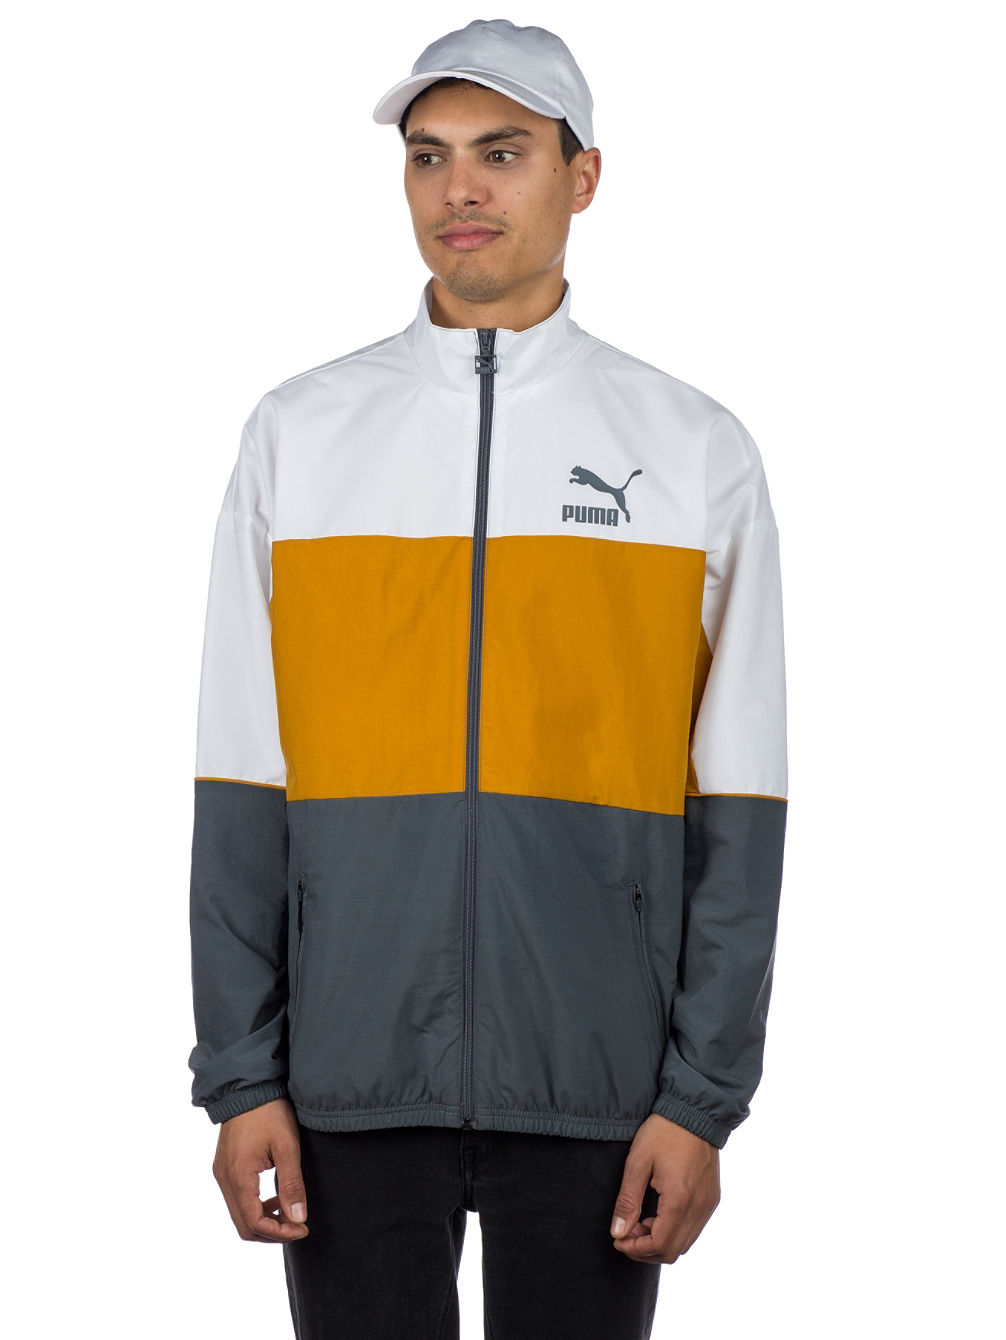 5658aa7b2d09 Buy Puma Retro Woven Track Jacket online at Blue Tomato